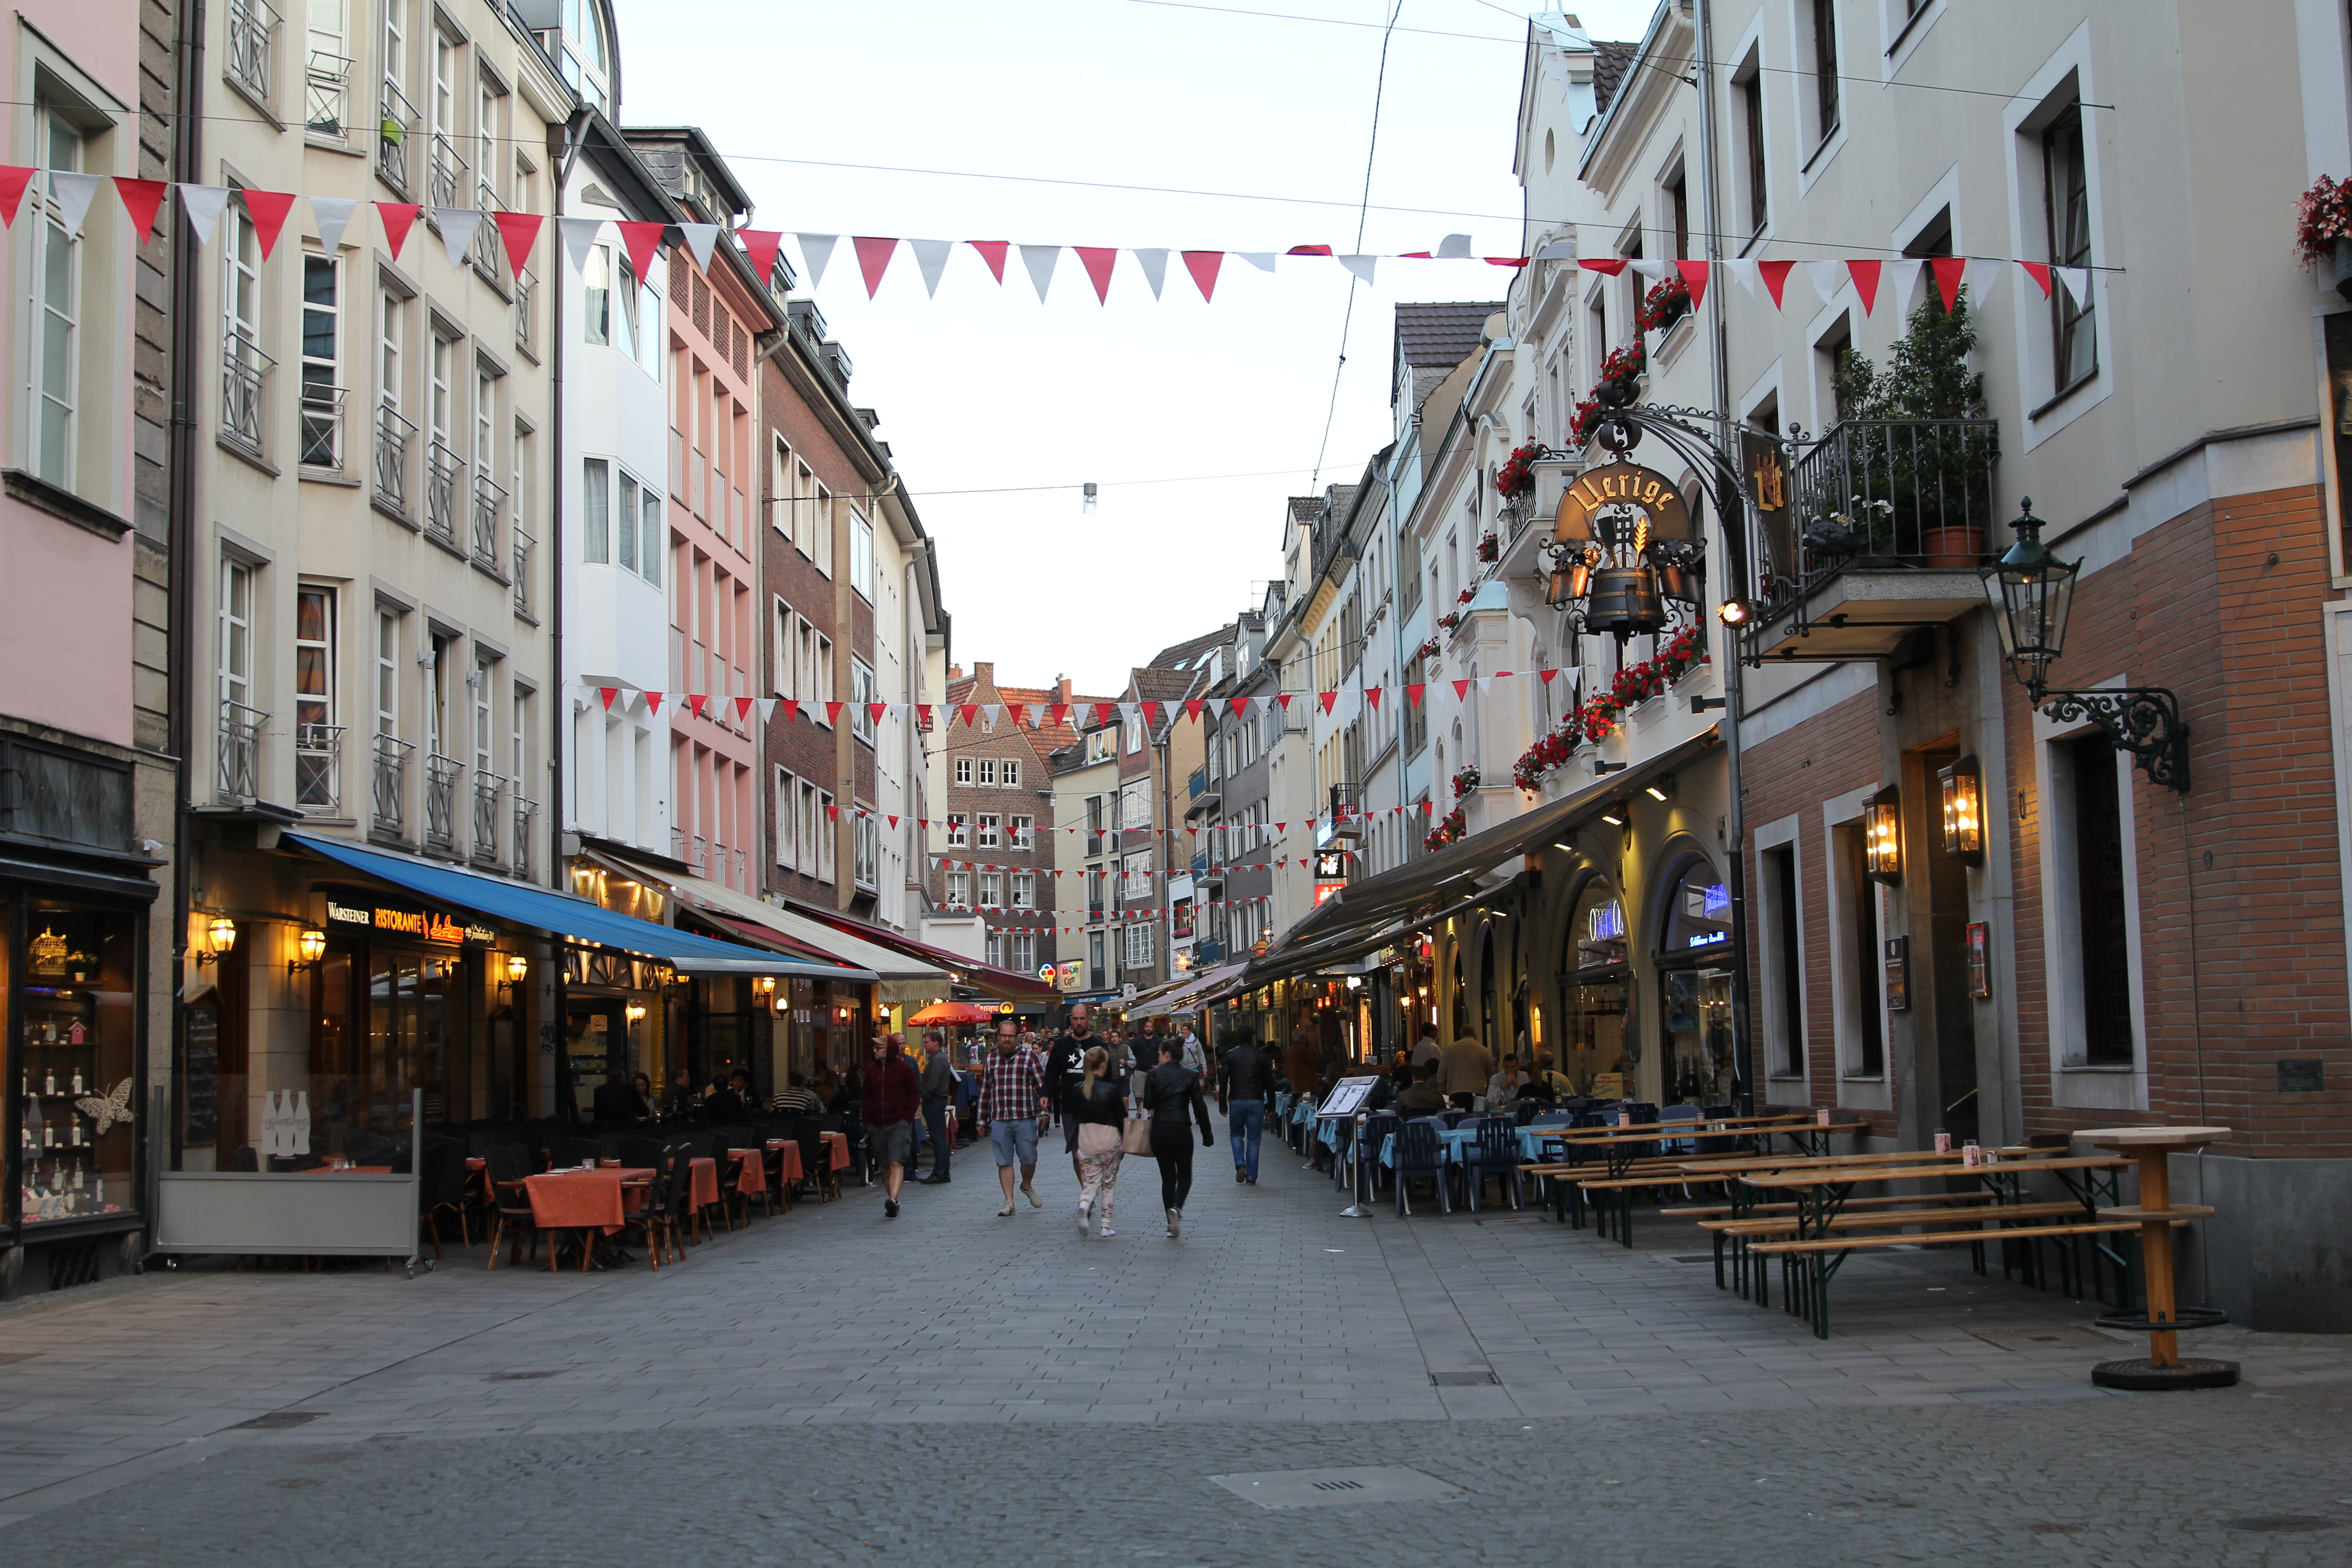 Dusseldorf, or the longest bar in the world